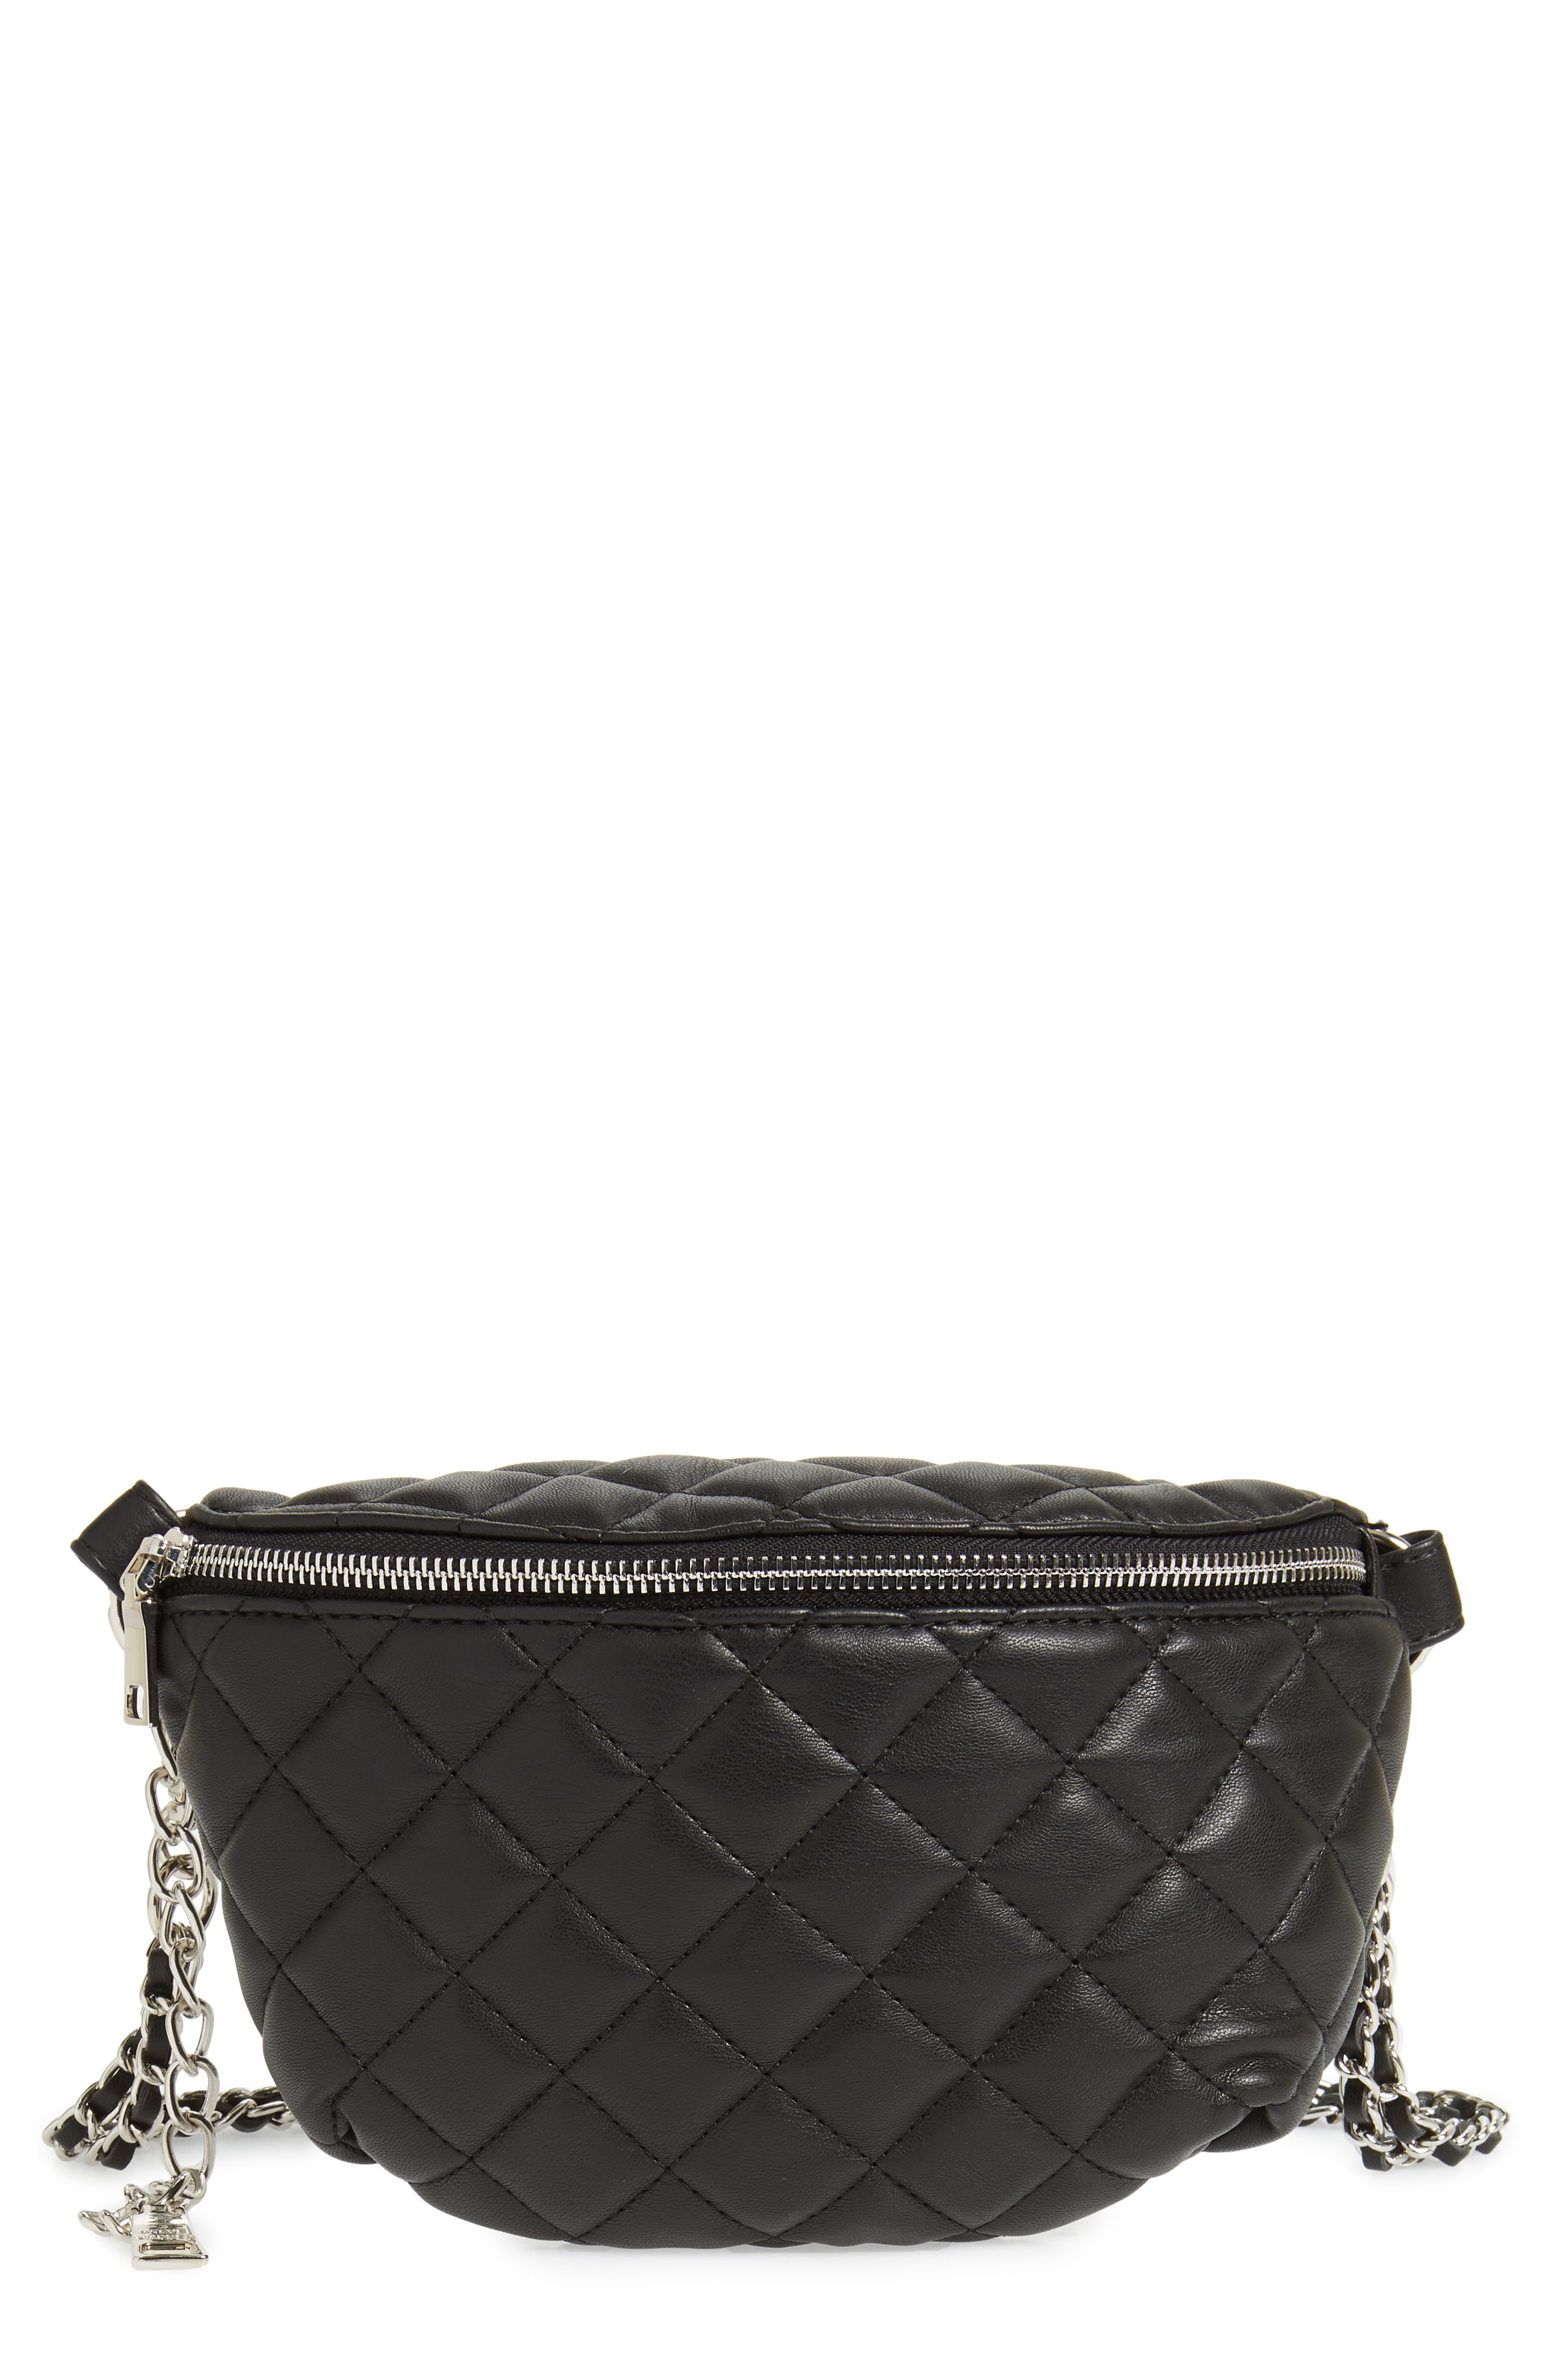 ee6565f4288 Steve Madden Quilted Faux Leather Fanny Pack - Black In Black Silver ...